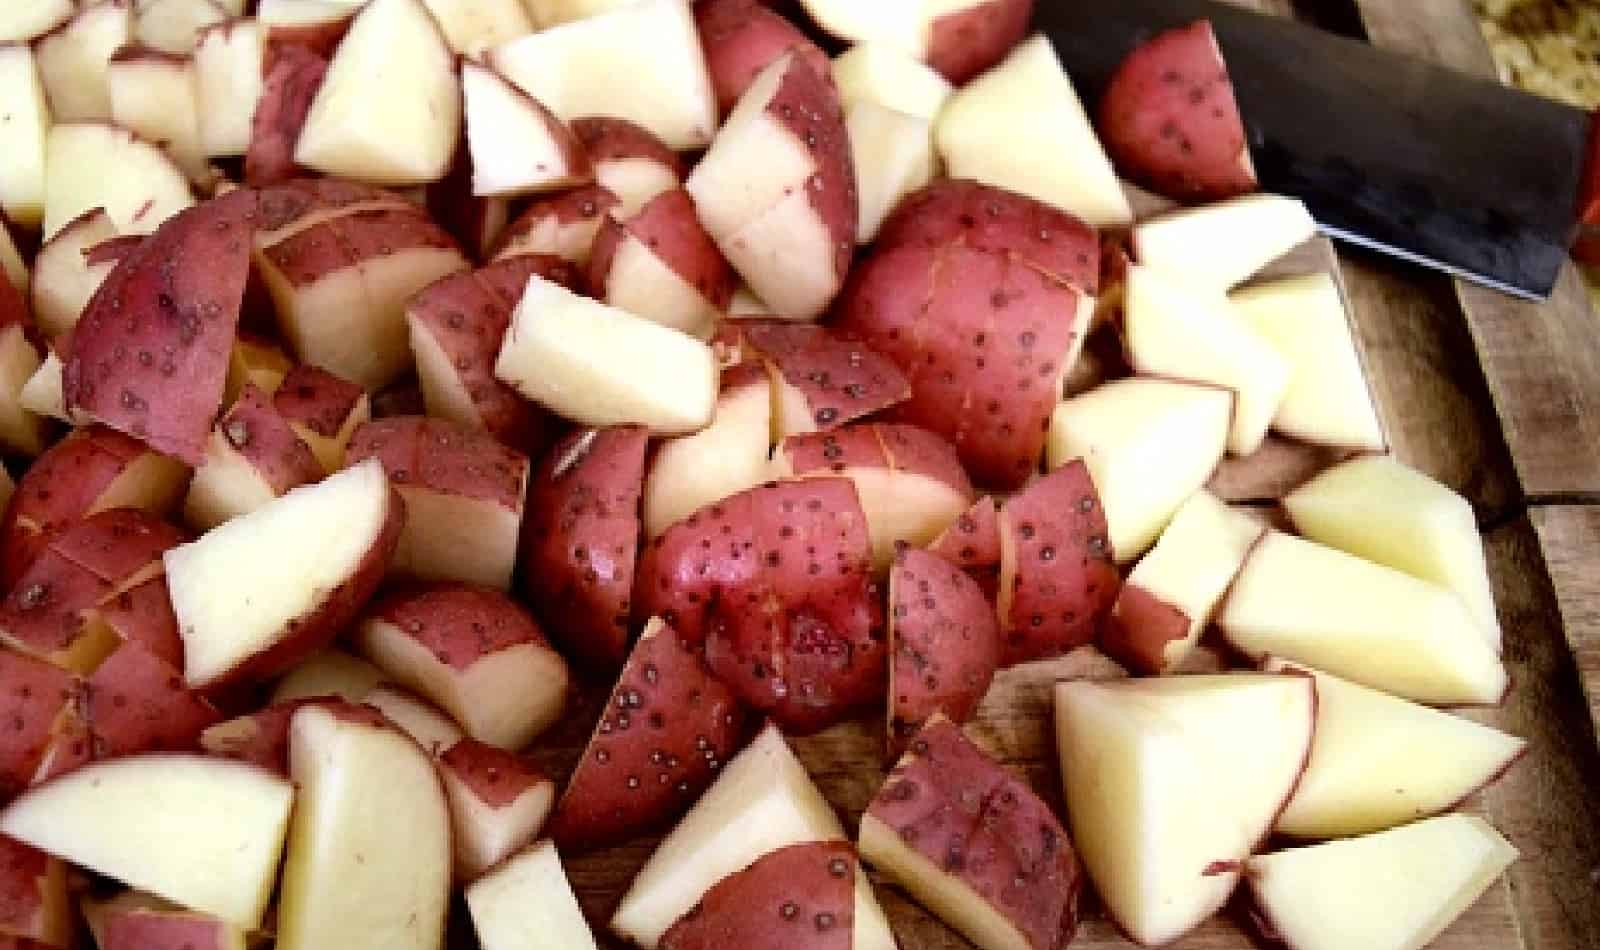 Cutting red potatoes